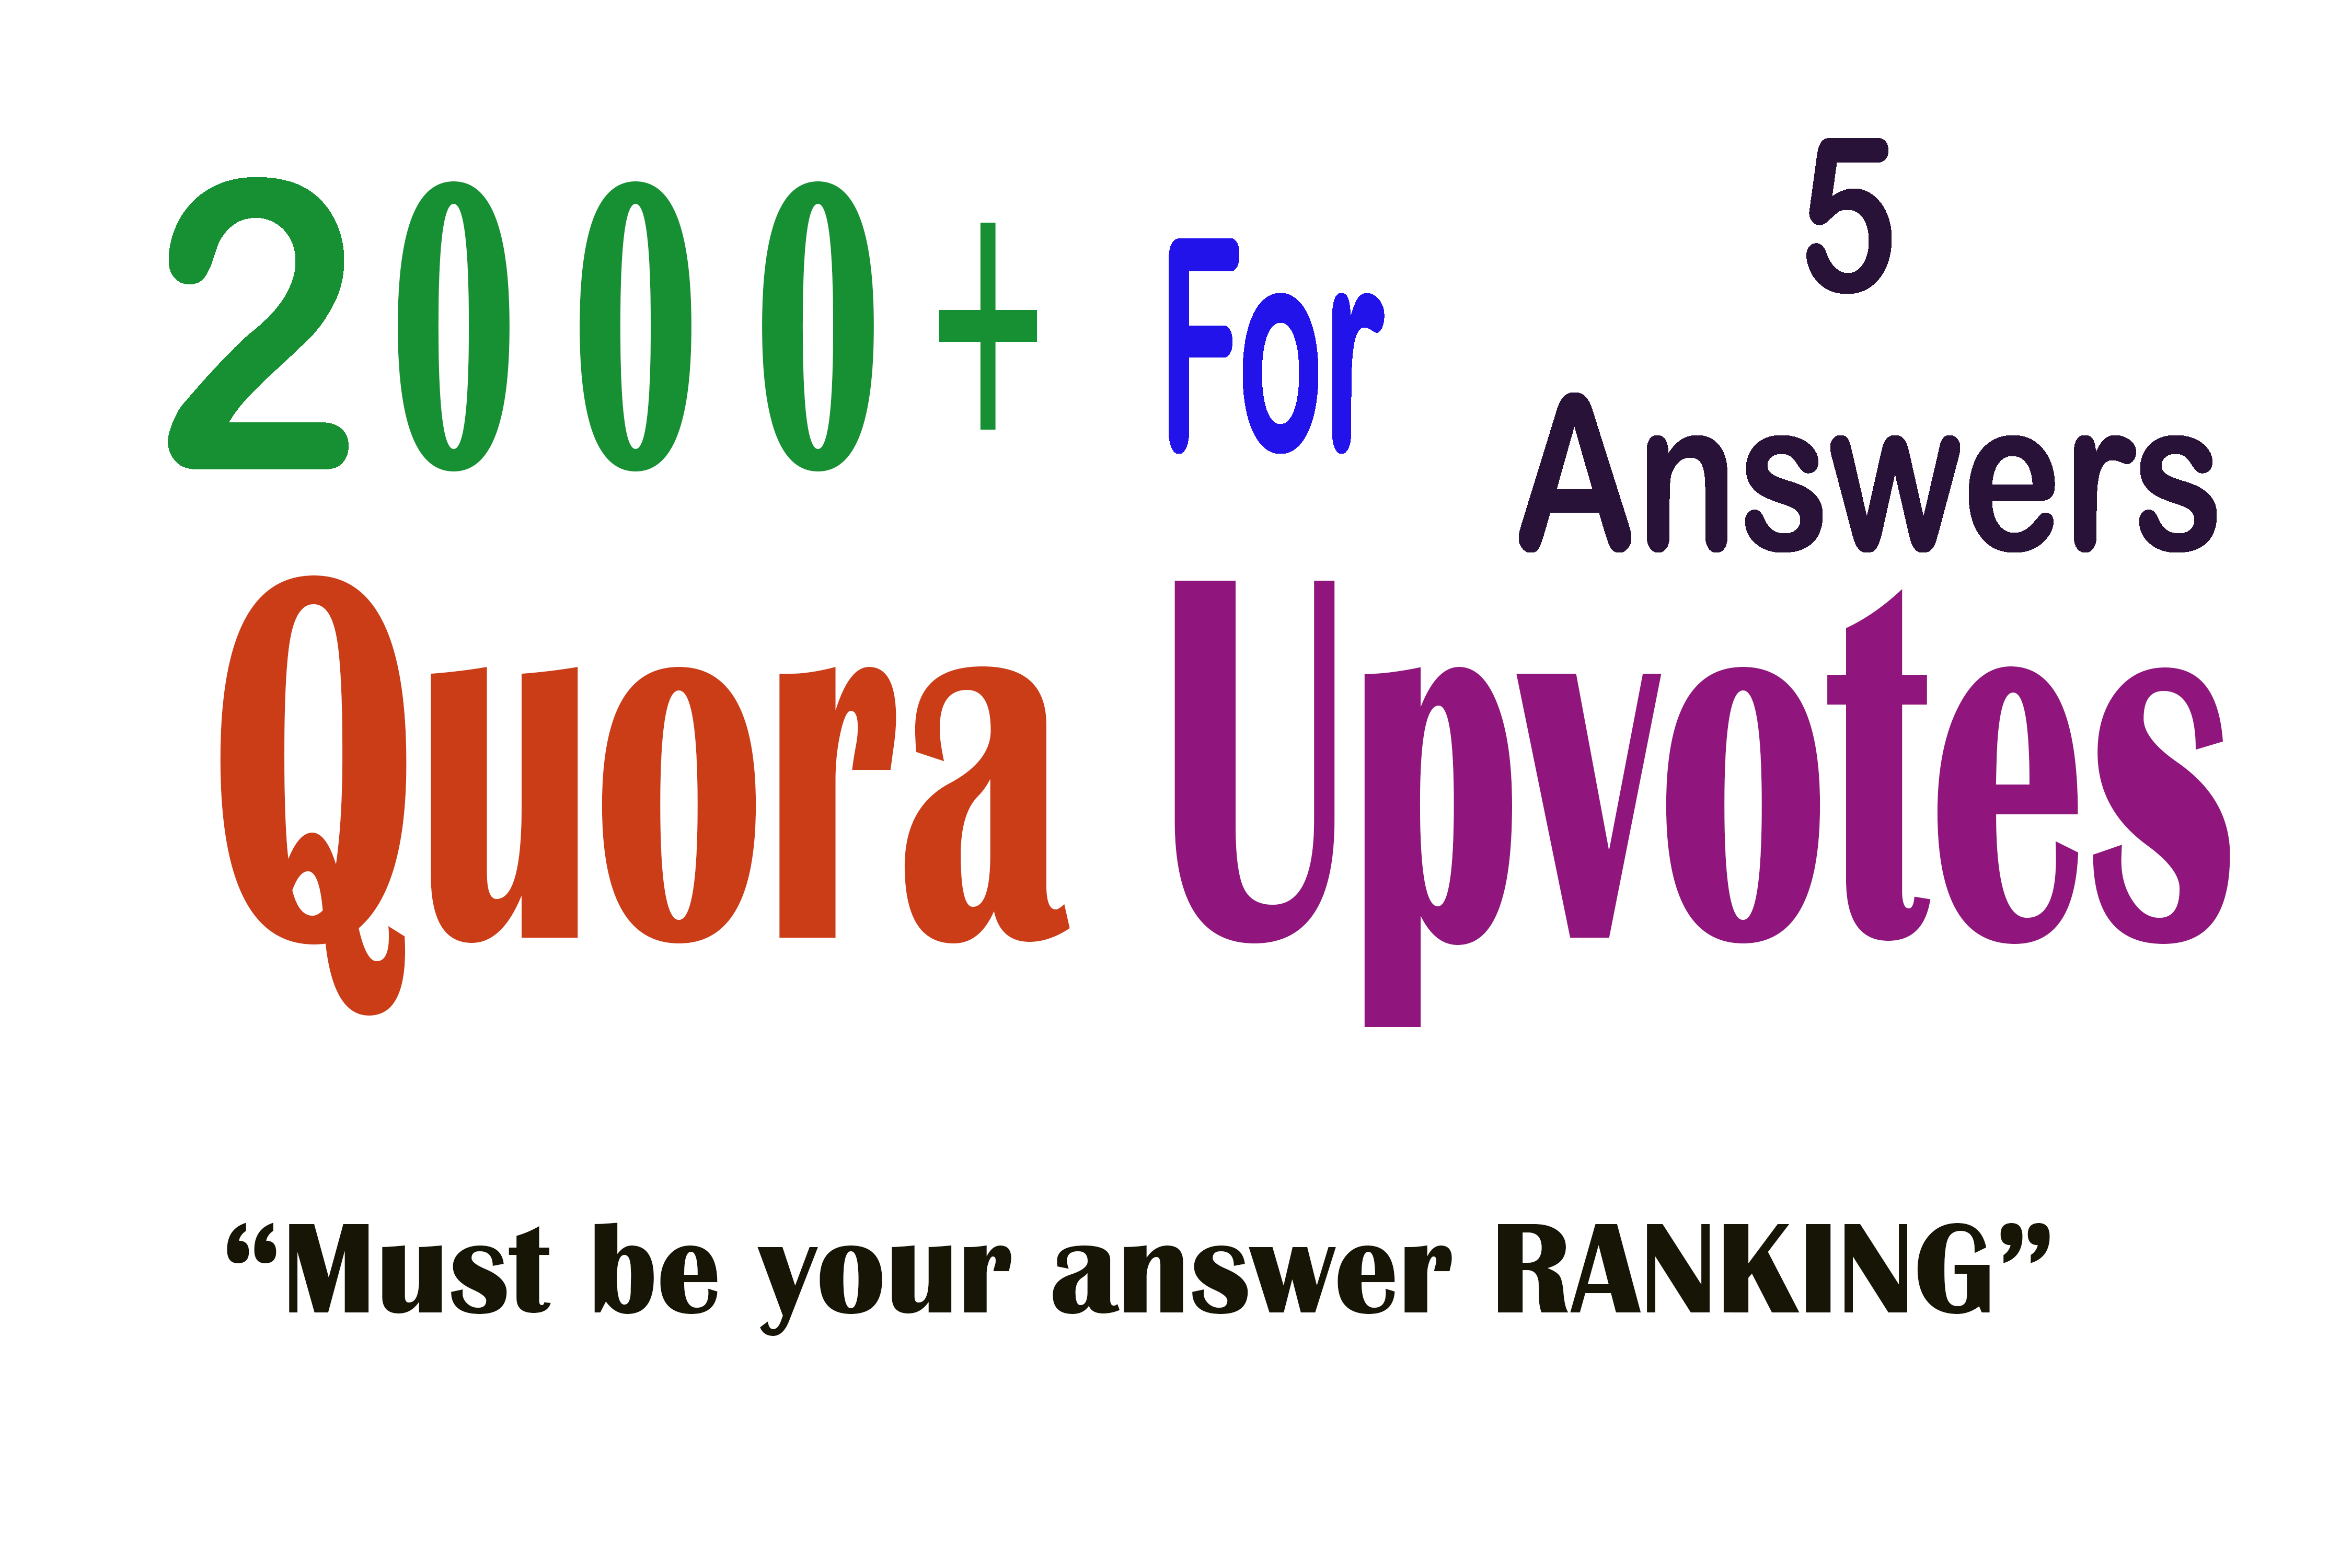 2000+ Quora Upvotes for your answer to get Ranking